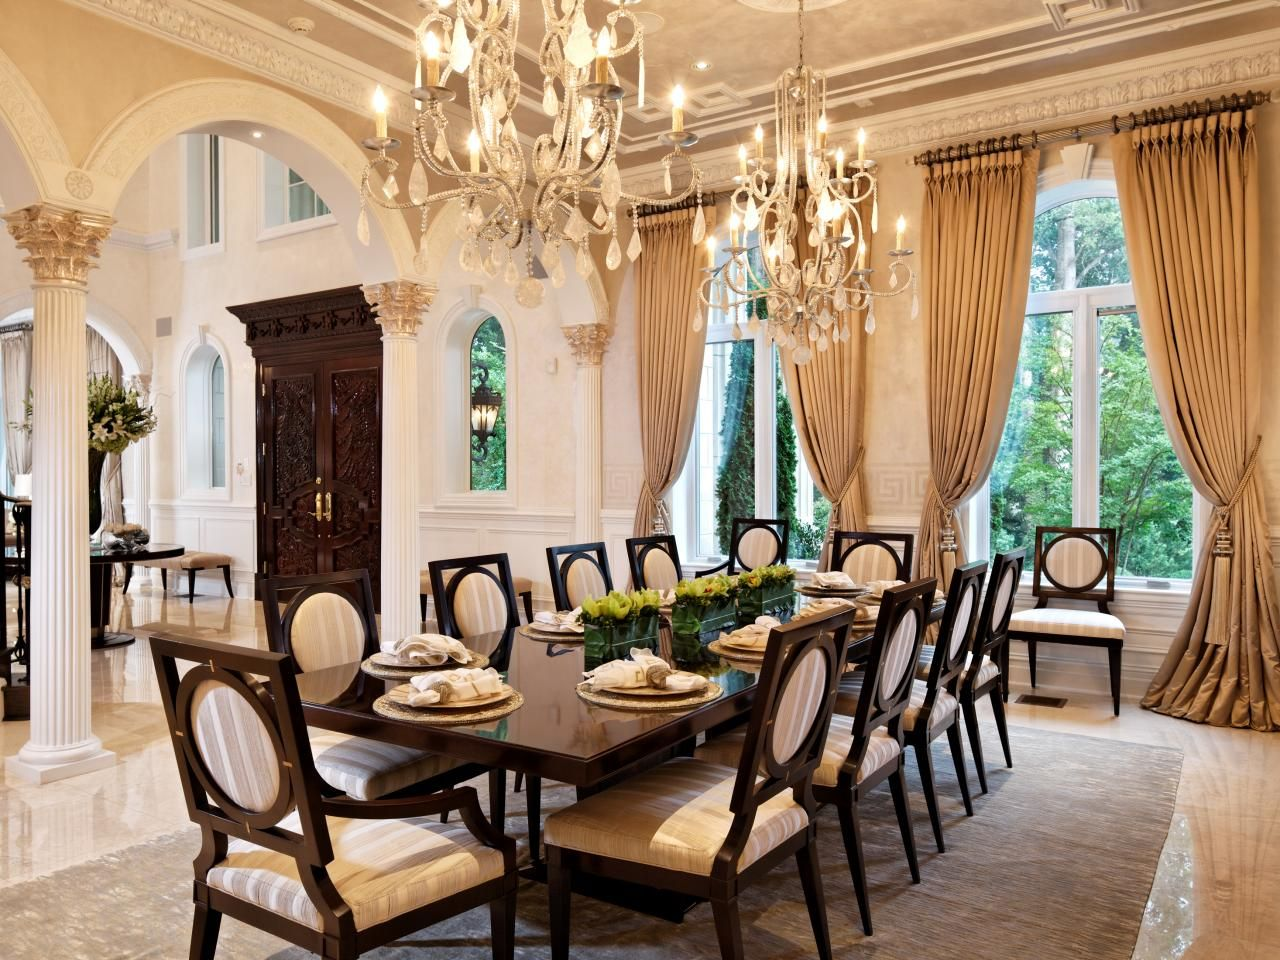 A Stunning Wood Dining Table With Seating For Eight Draws You Into This Formal Room French Pleat Drapes Double Chandeliers And Decorative Arches